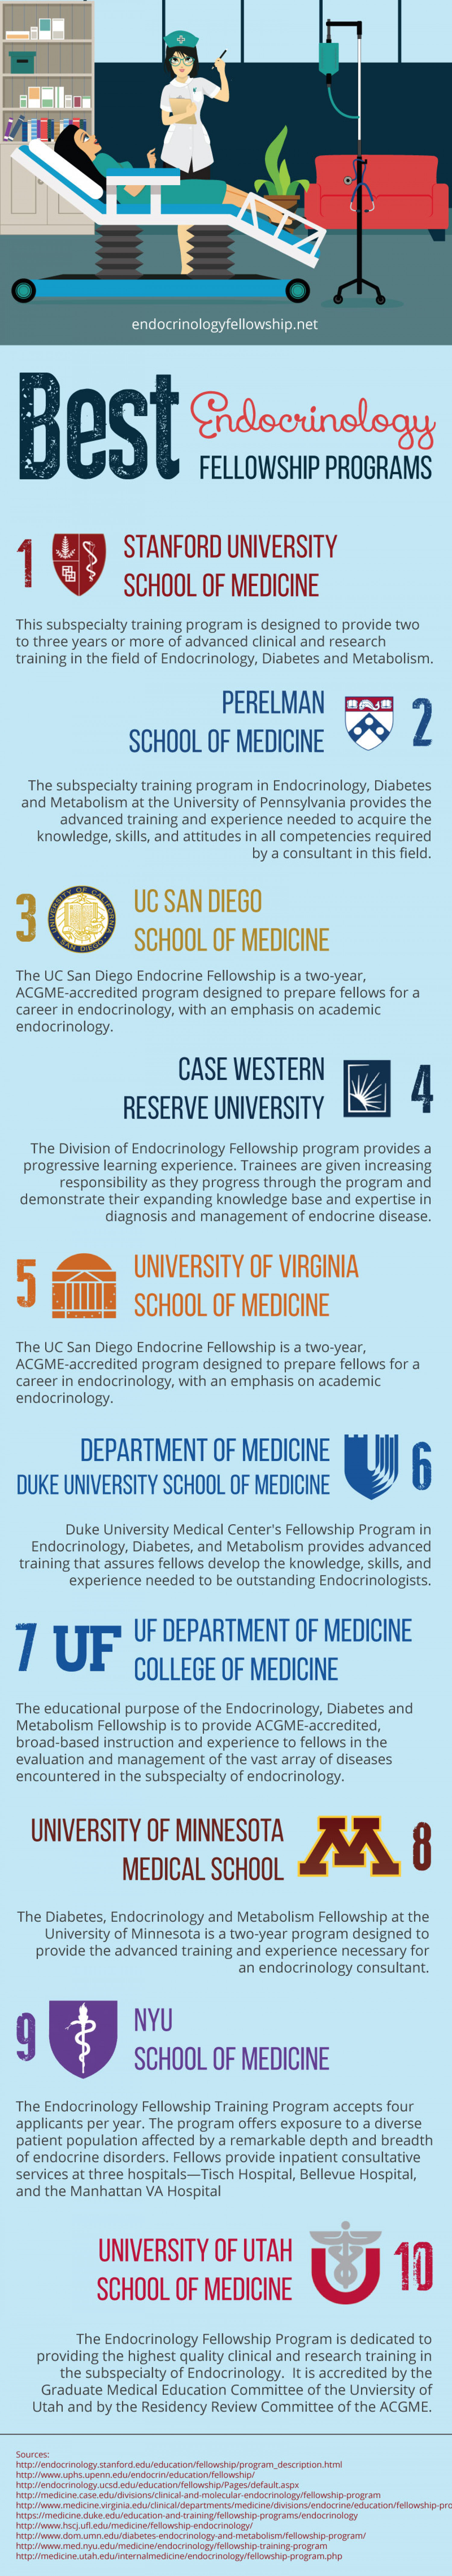 Top Endocrinology Fellowship Programs | Visual ly